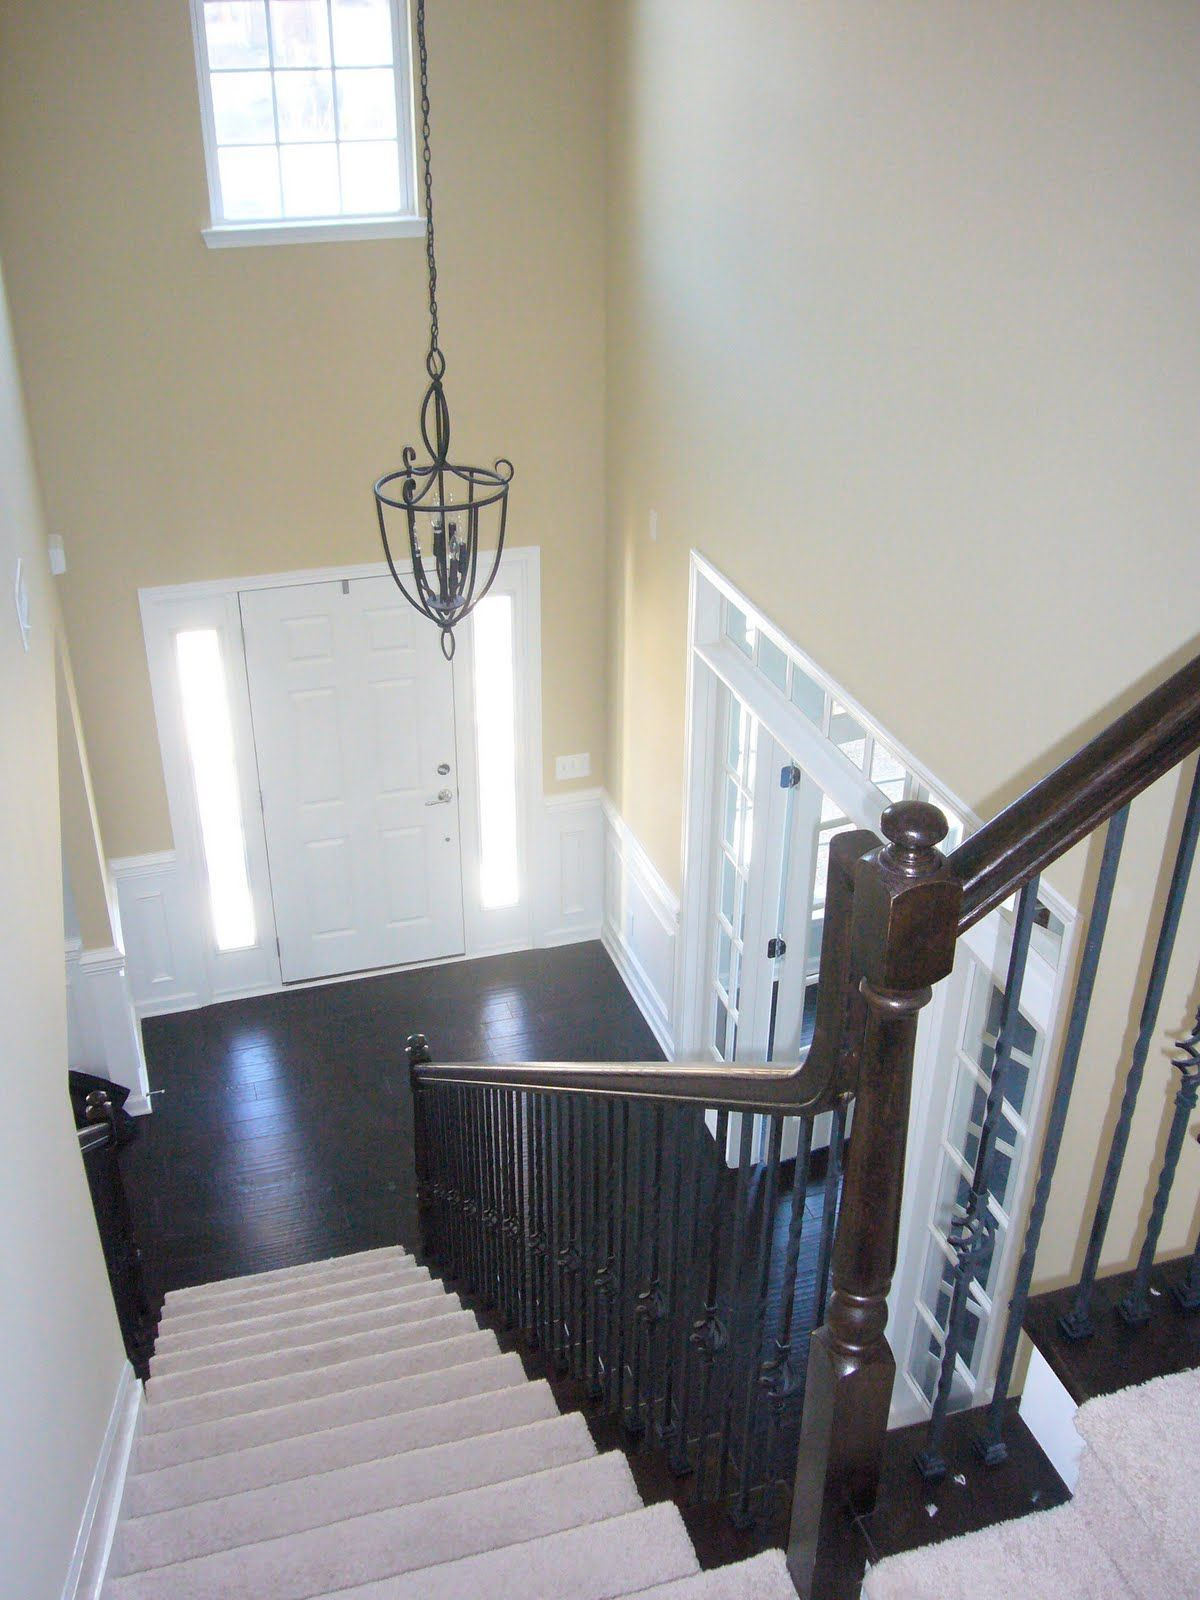 Foyer Wall Paint Ideas : What color should i paint my foyer? foyer pinterest